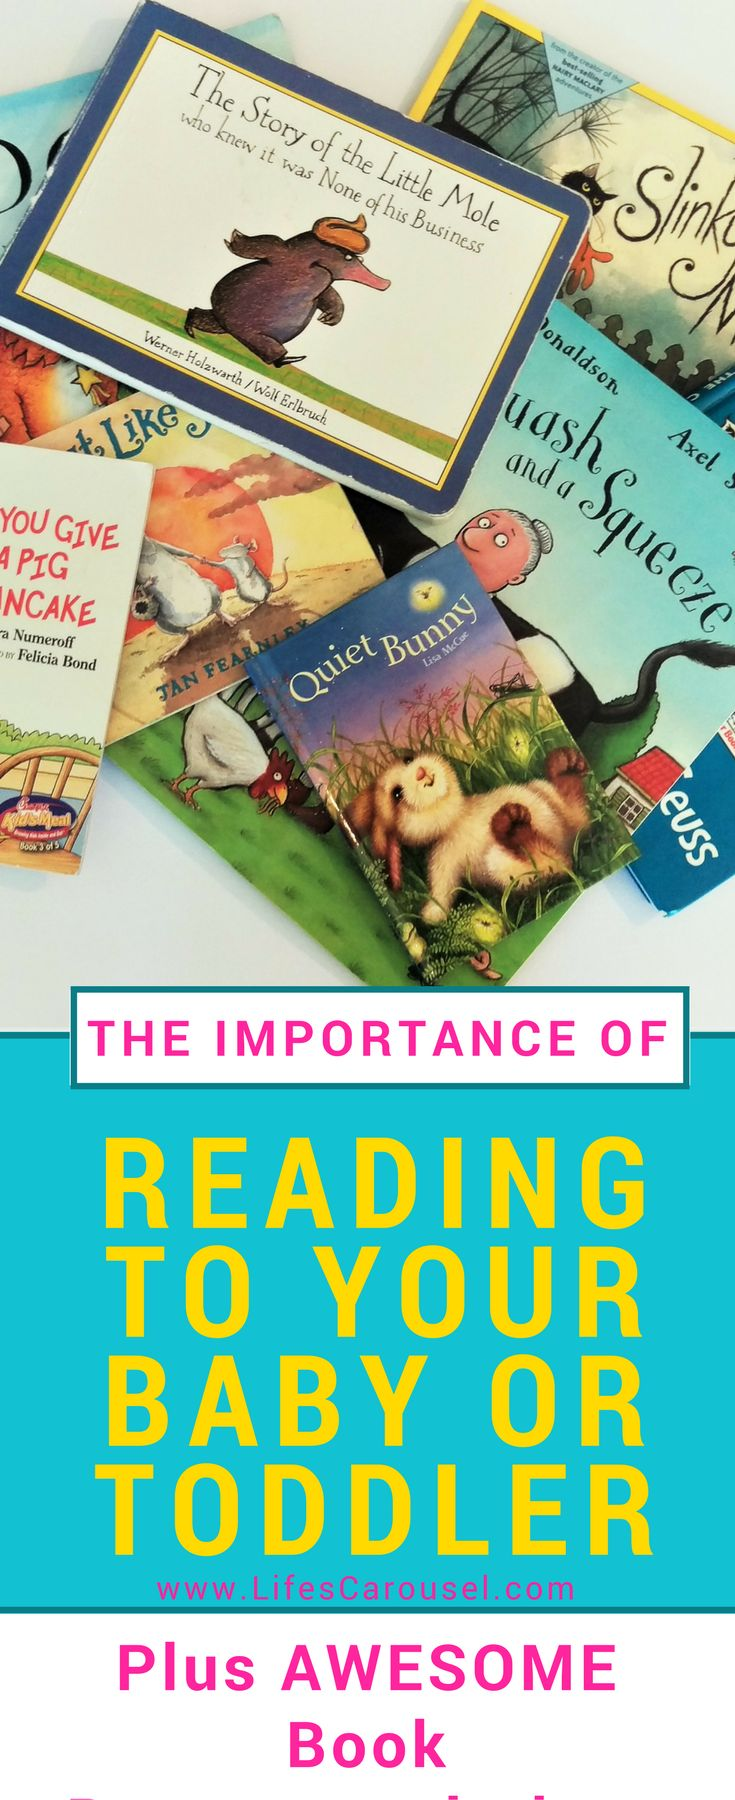 Importance of Reading with Your Toddler and Baby | The ONE thing you can do to help your child have a brighter future! Establish a great reading routine with your toddler or baby. PLUS AWESOME BOOK RECOMMENDATIONS!